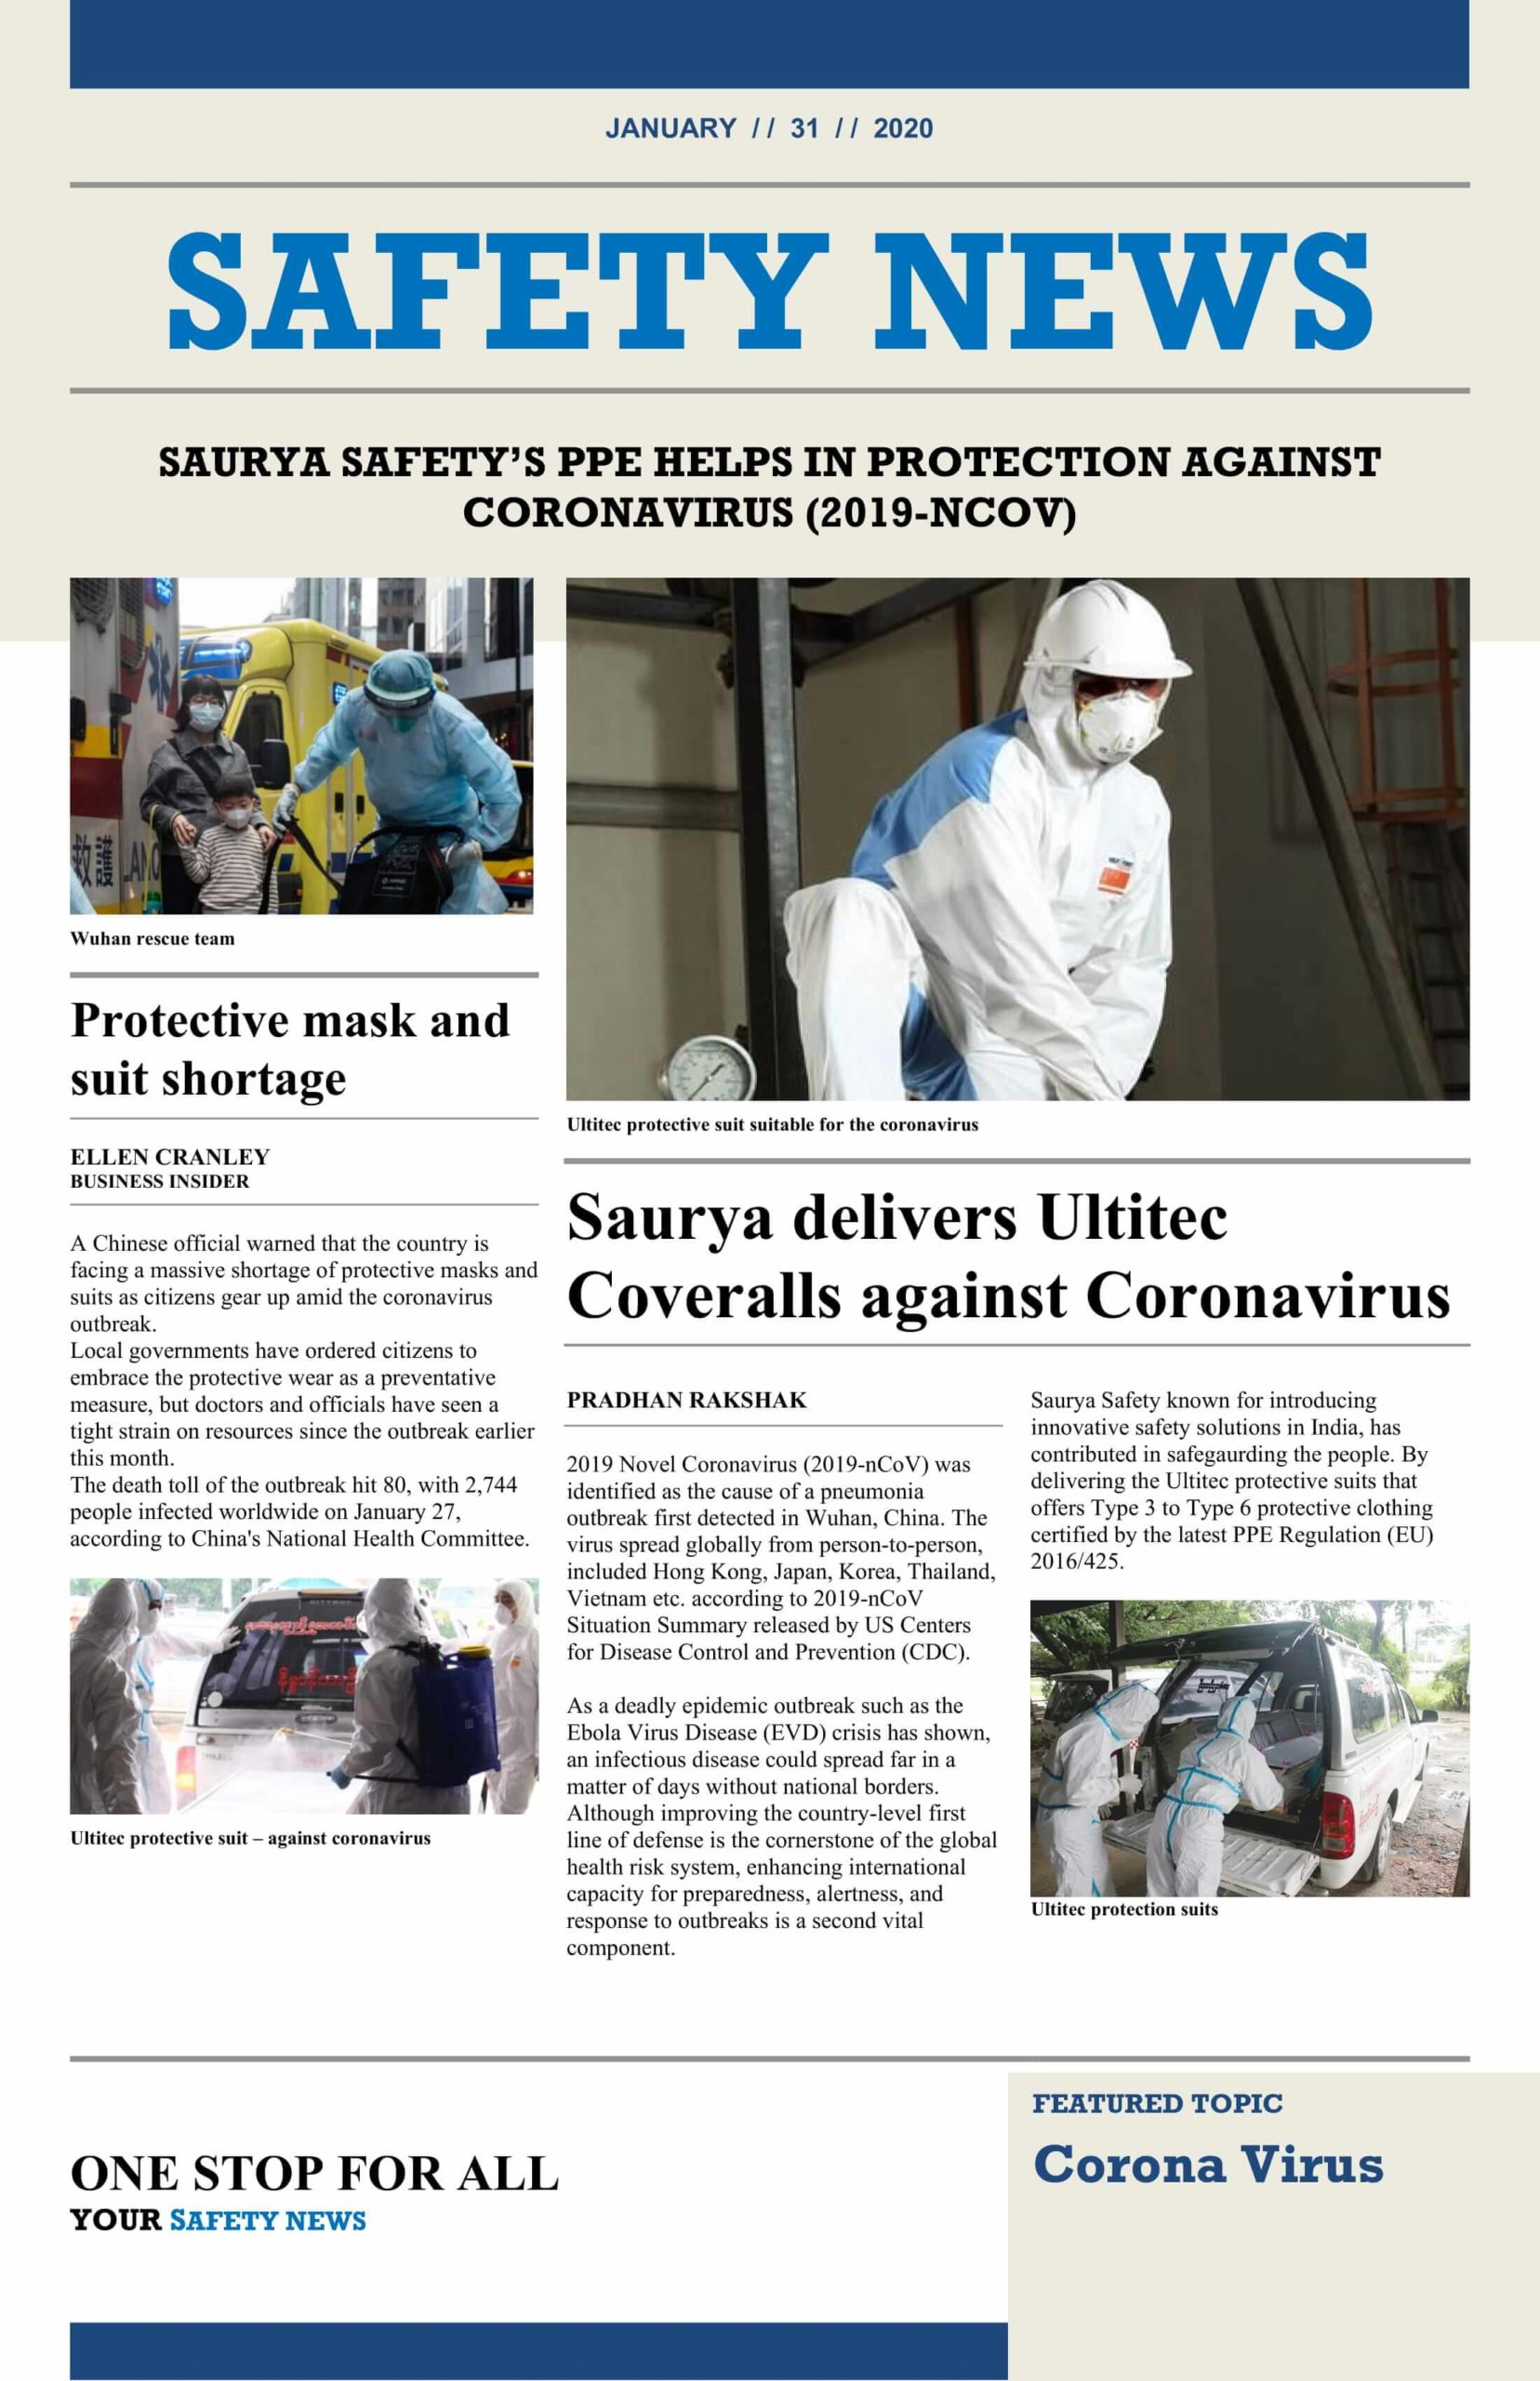 Saurya Safety's PPE Helps in Protection Against Corona Virus Image